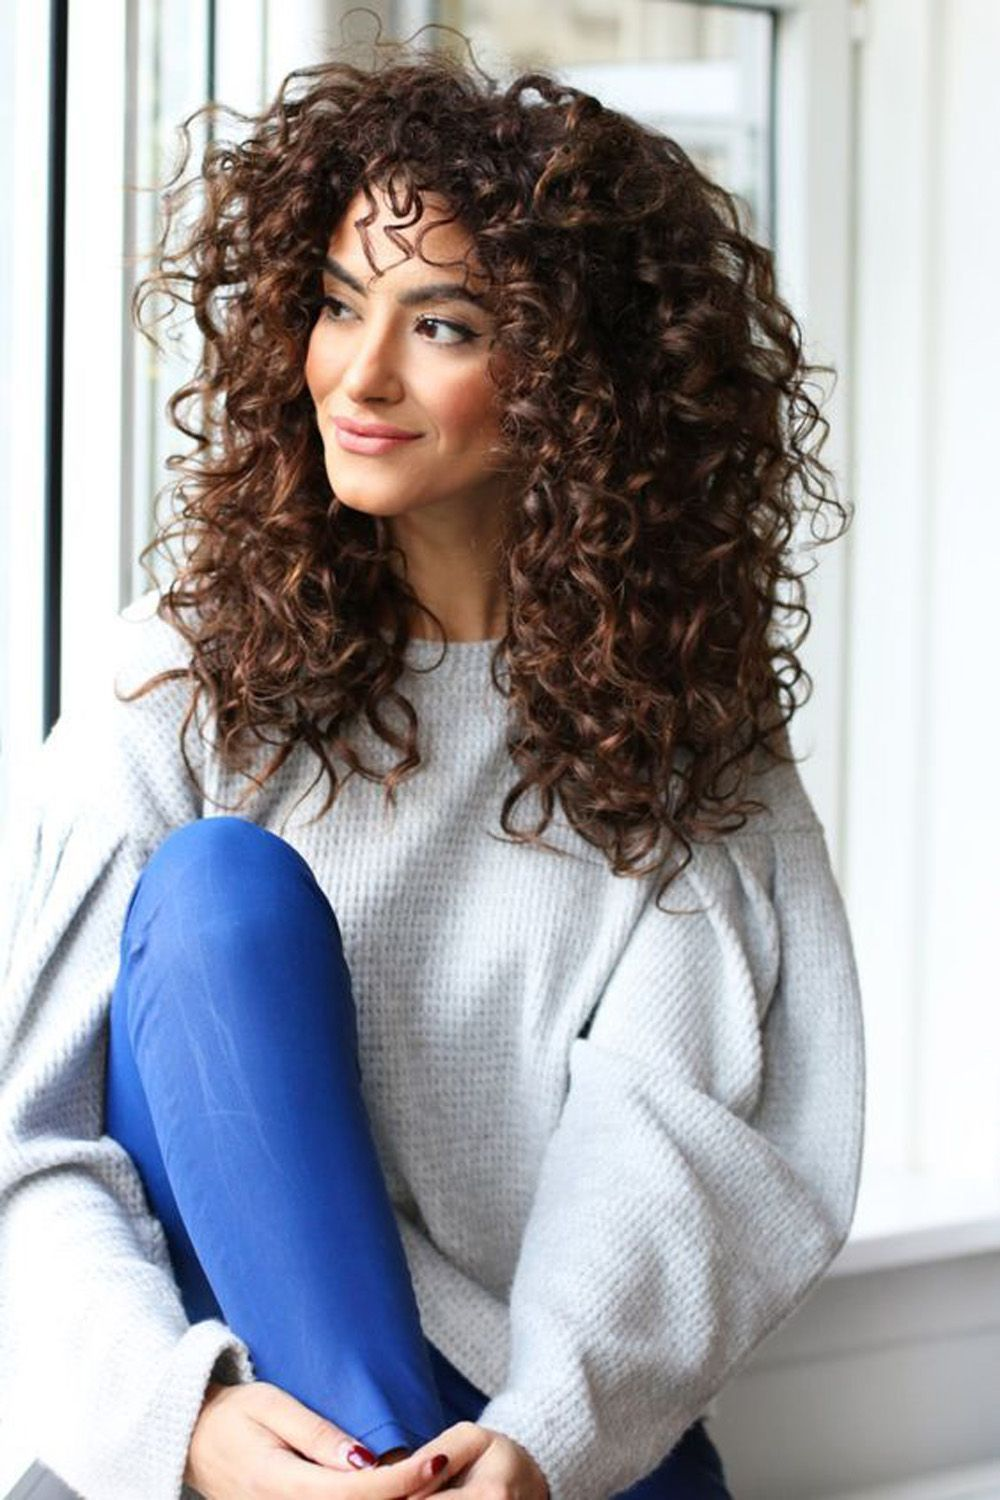 70s bangs #70s #curly hairstyles short #curly boy hairstyles #curly hairstyles black girl #curly grey hairstyles #curly hairstyles mid length #curly hairstyles pics #curly hair volume products #jumbo curly hairstyles